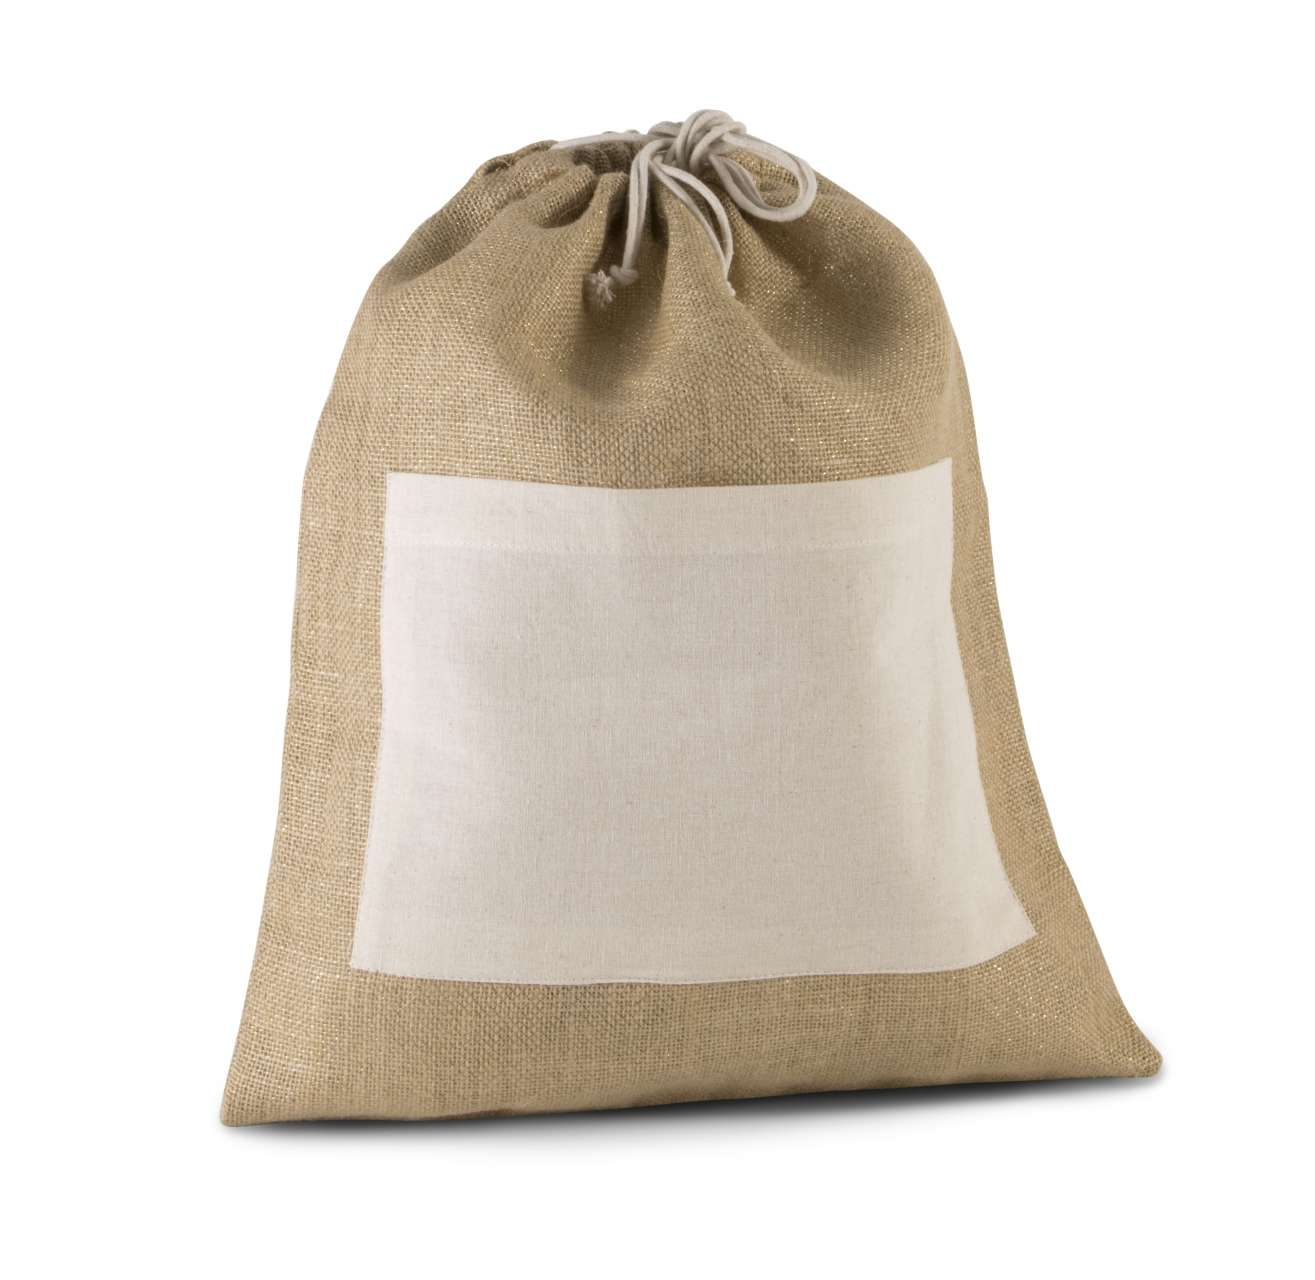 JUTE DRAWSTING BAG